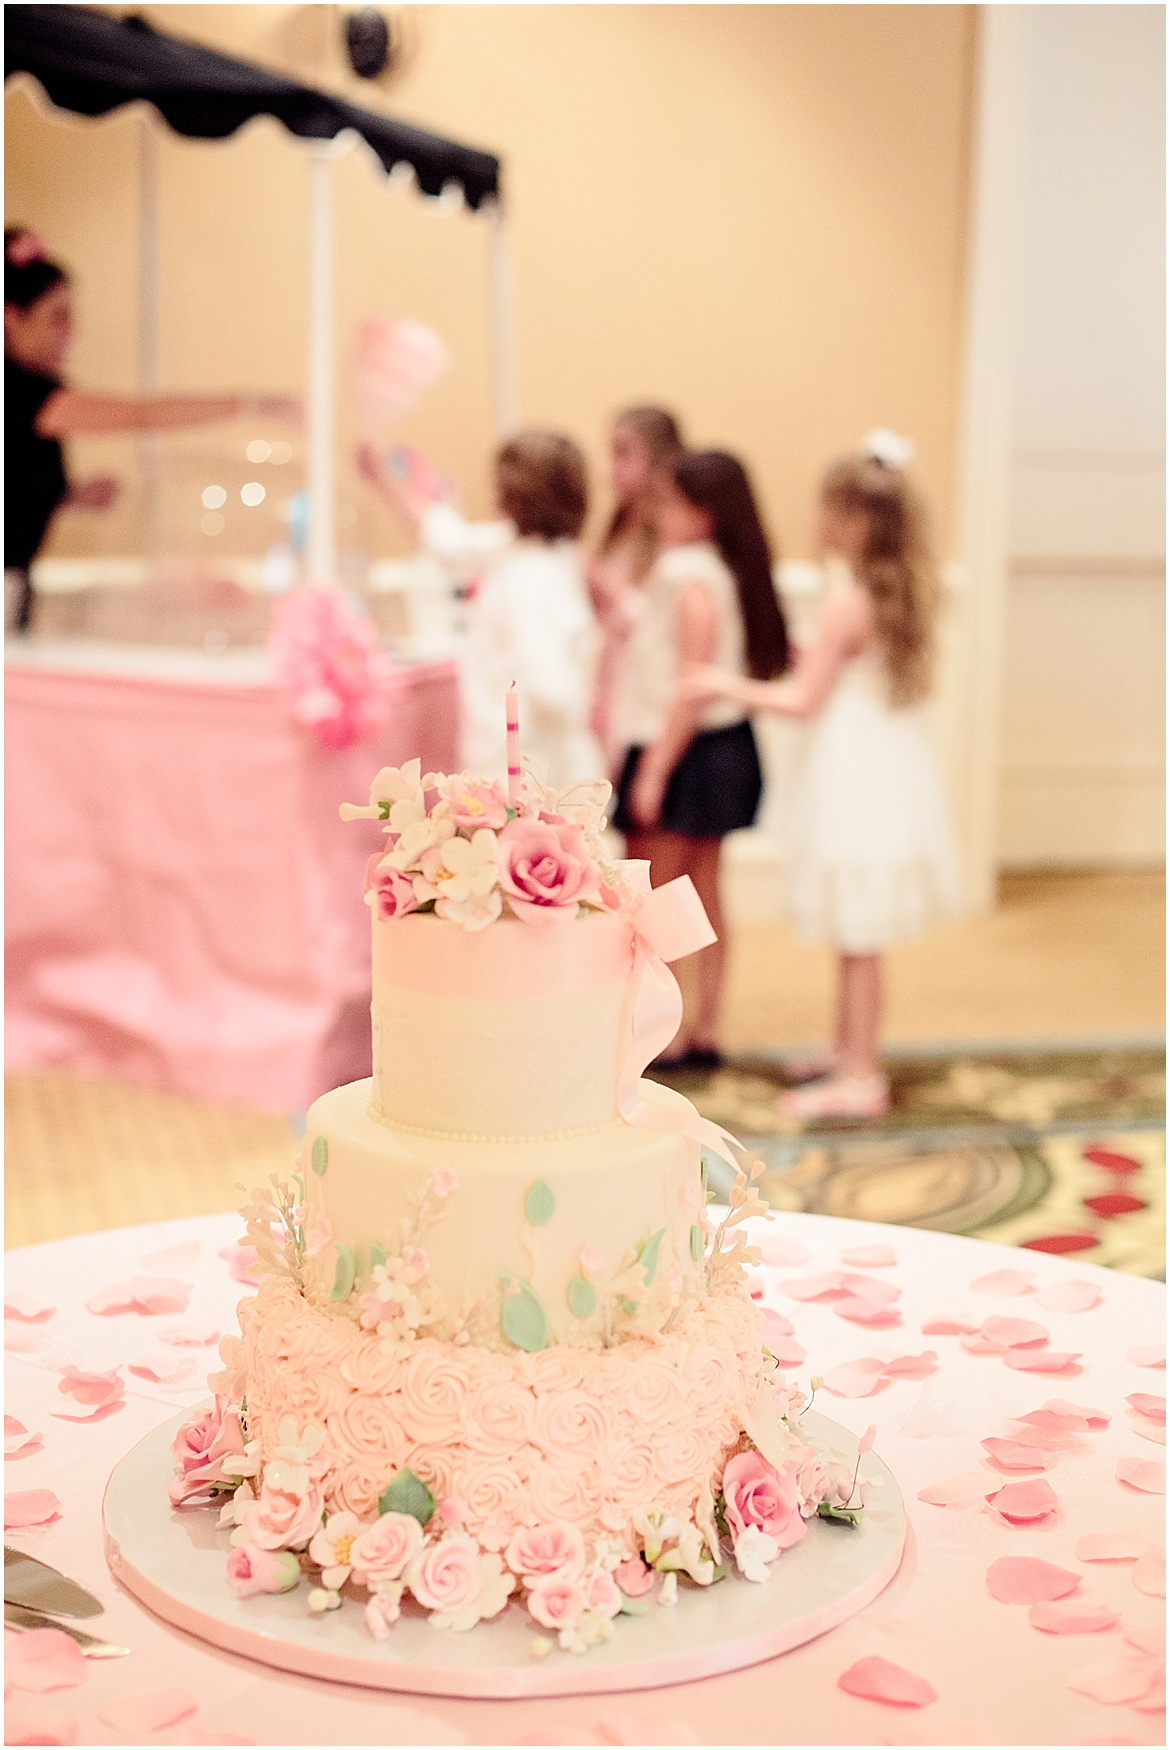 San Diego Birthday Party Photography | Park Hyatt Aviara